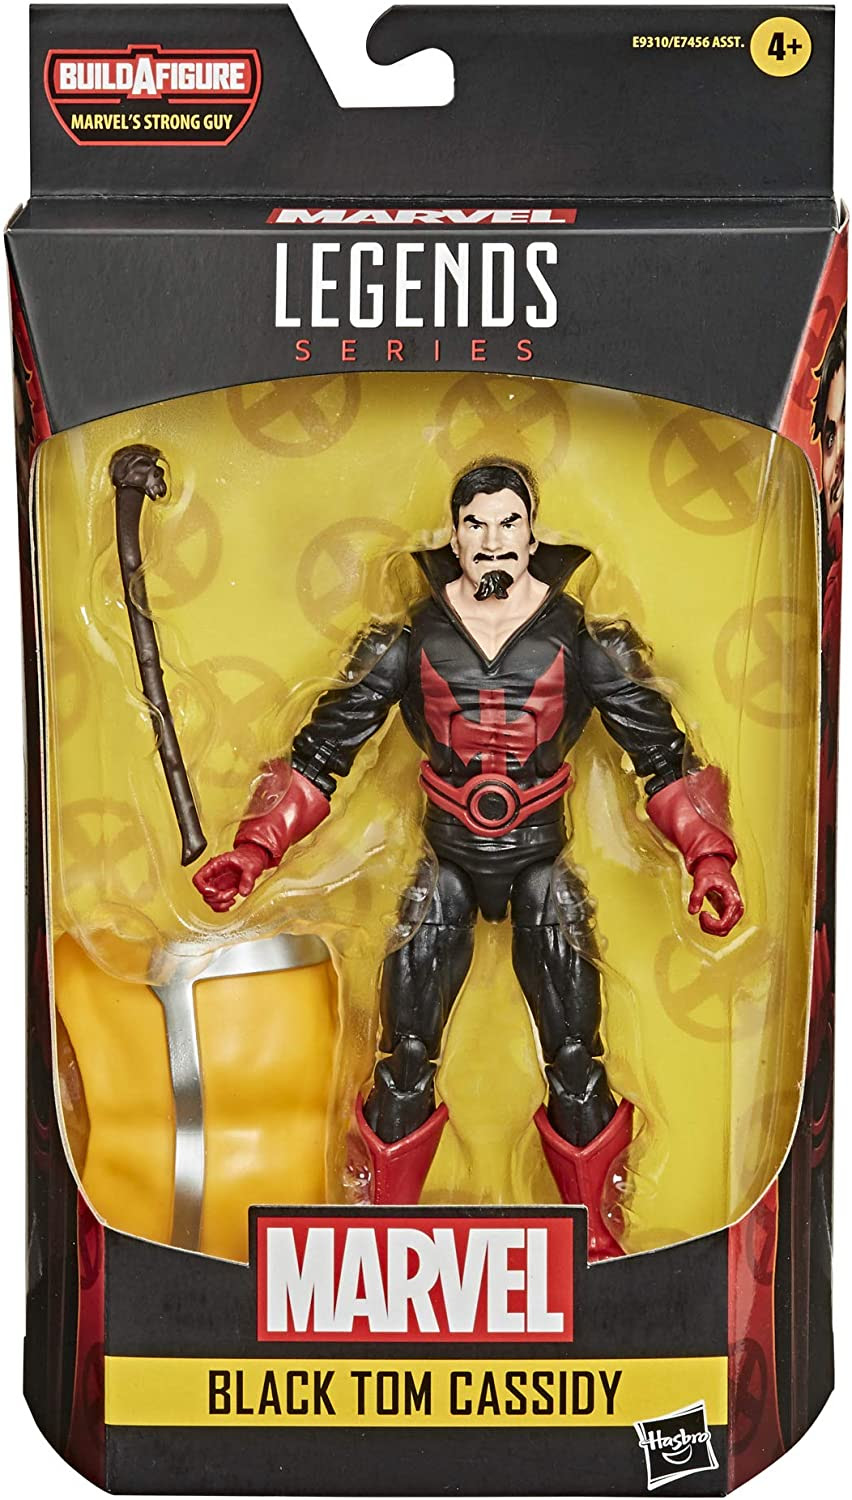 Image of Hasbro Marvel Legends Series Deadpool Collection 6-inch Black Tom Cassidy Action Figure Toy Premium Design and 1 Accessory